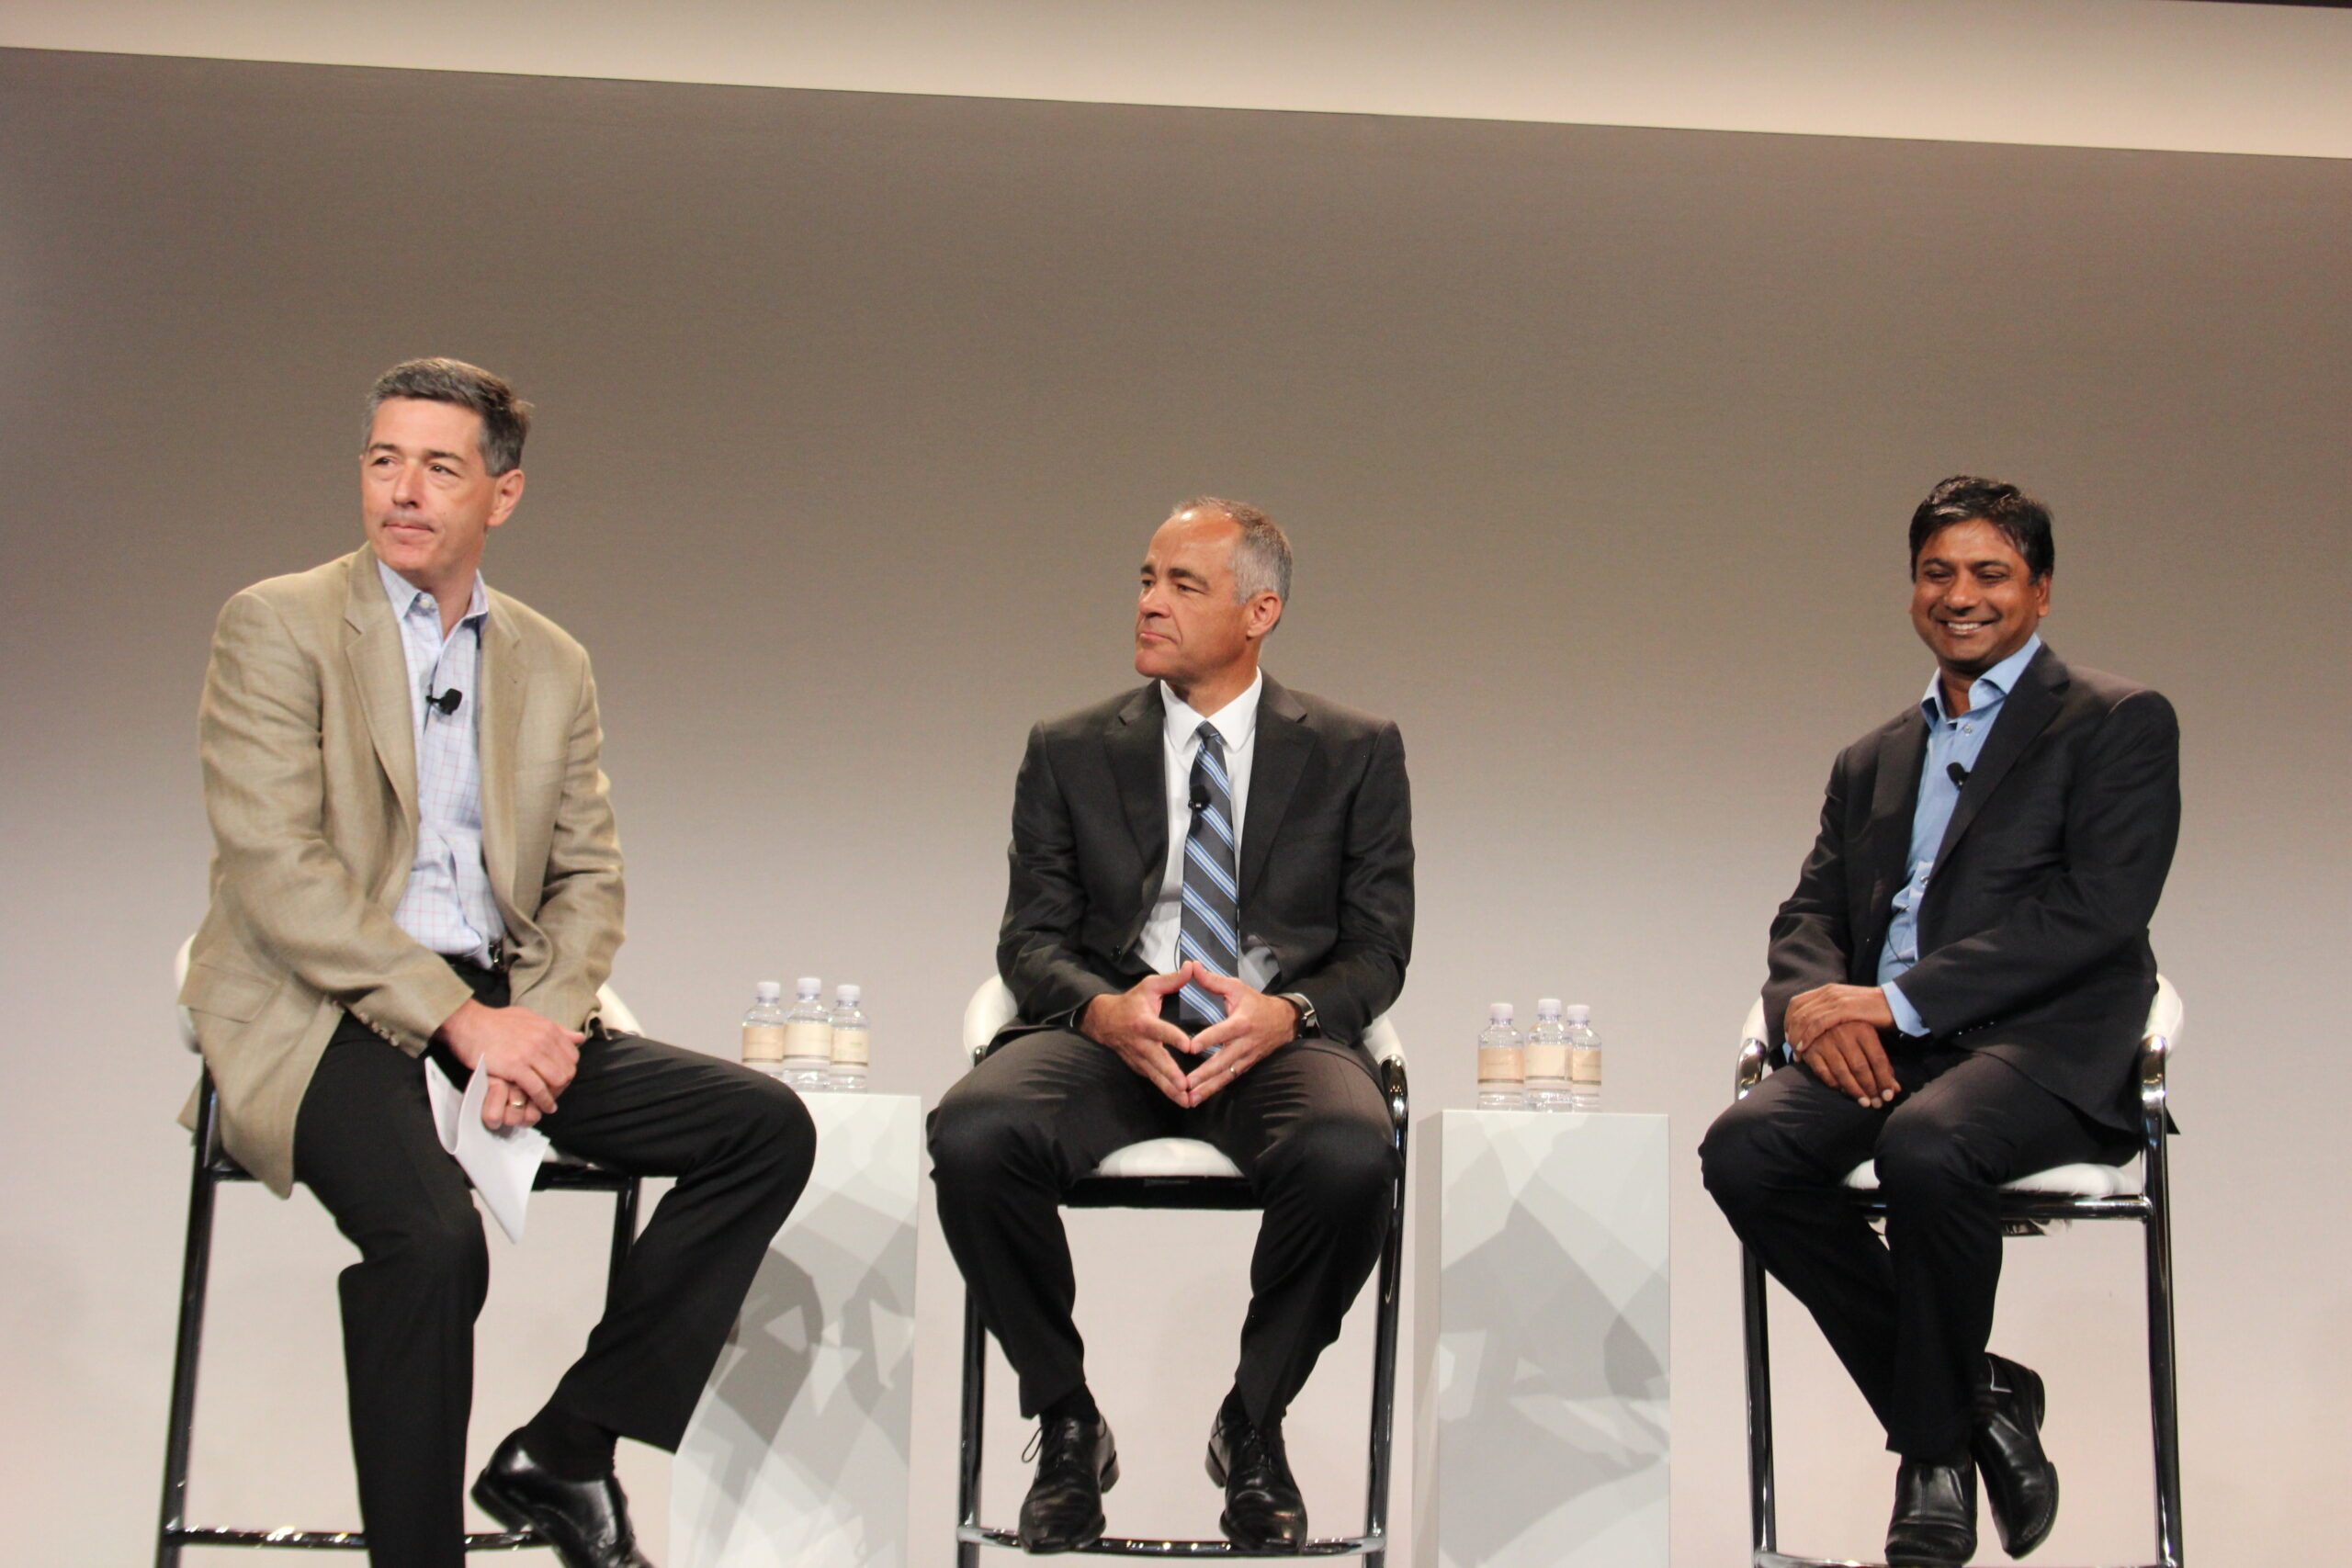 Manish Goel, senior vice president and general manage of storage at HPE [right] and Ric Lewis, senior vice-president and general manager of converged data centre infrastructure [centre] on stage at HPE Discover.